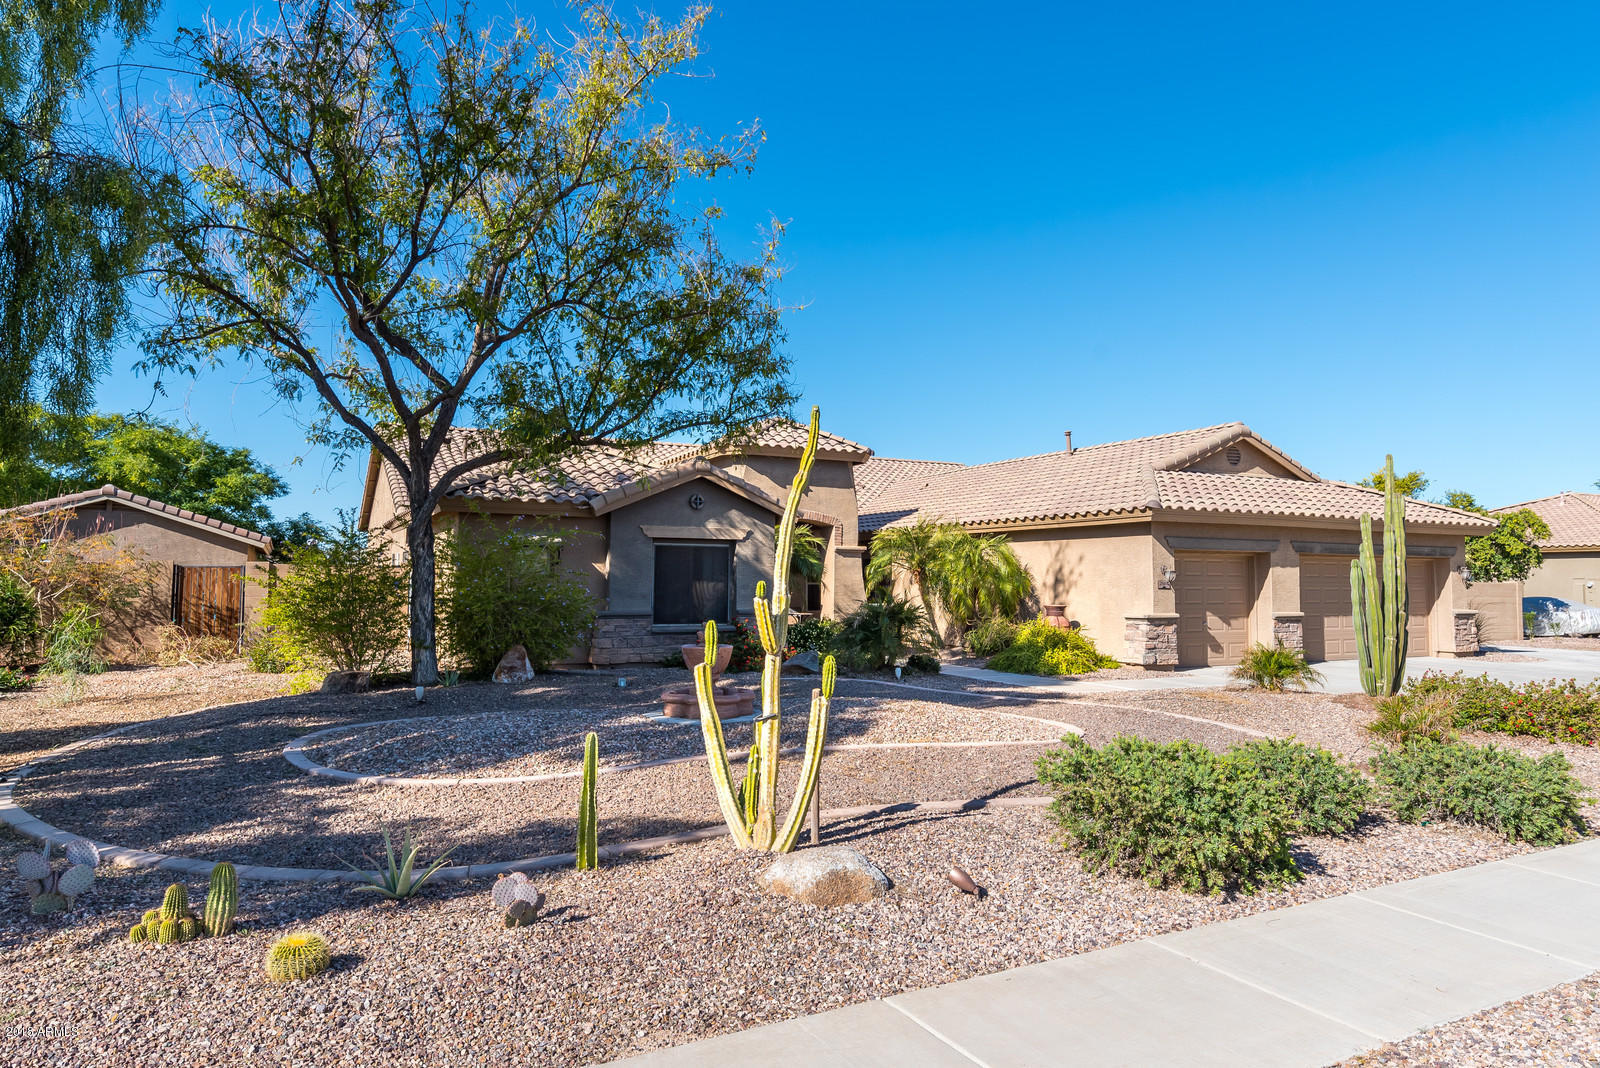 MLS 5873255 25510 S 116TH Street, Chandler, AZ 85249 Golf Community